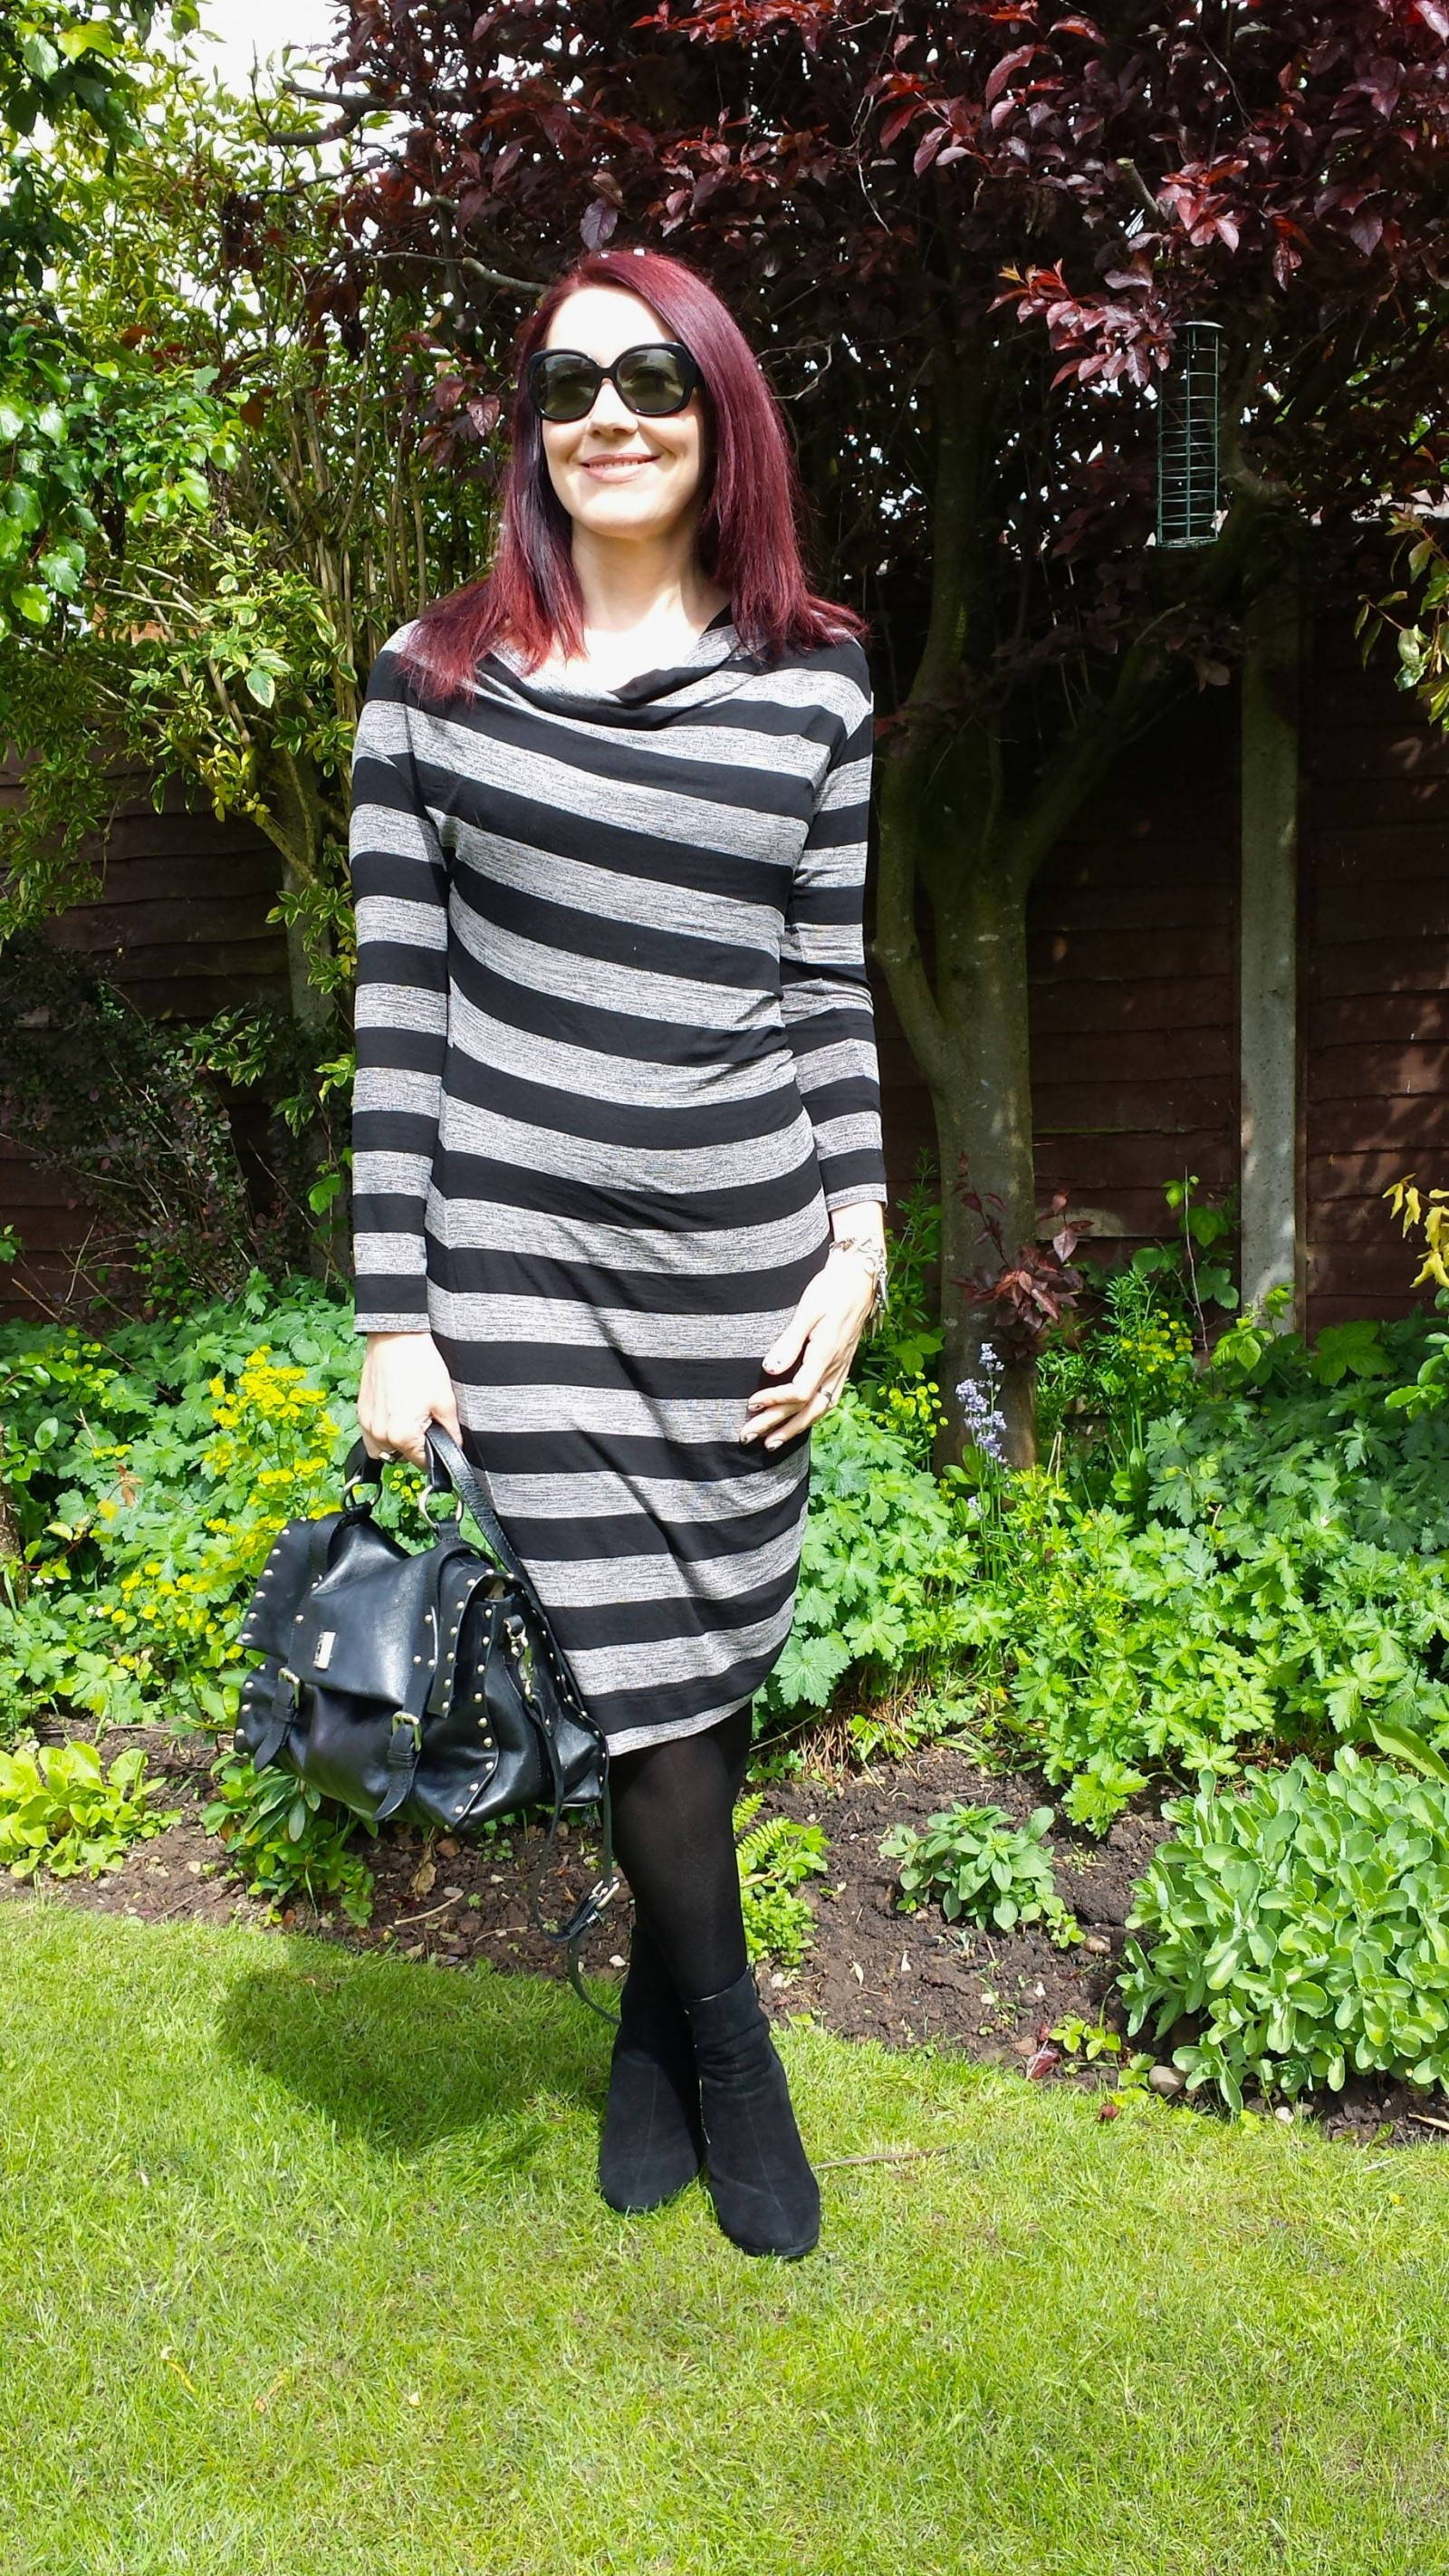 Linea striped jersey dress